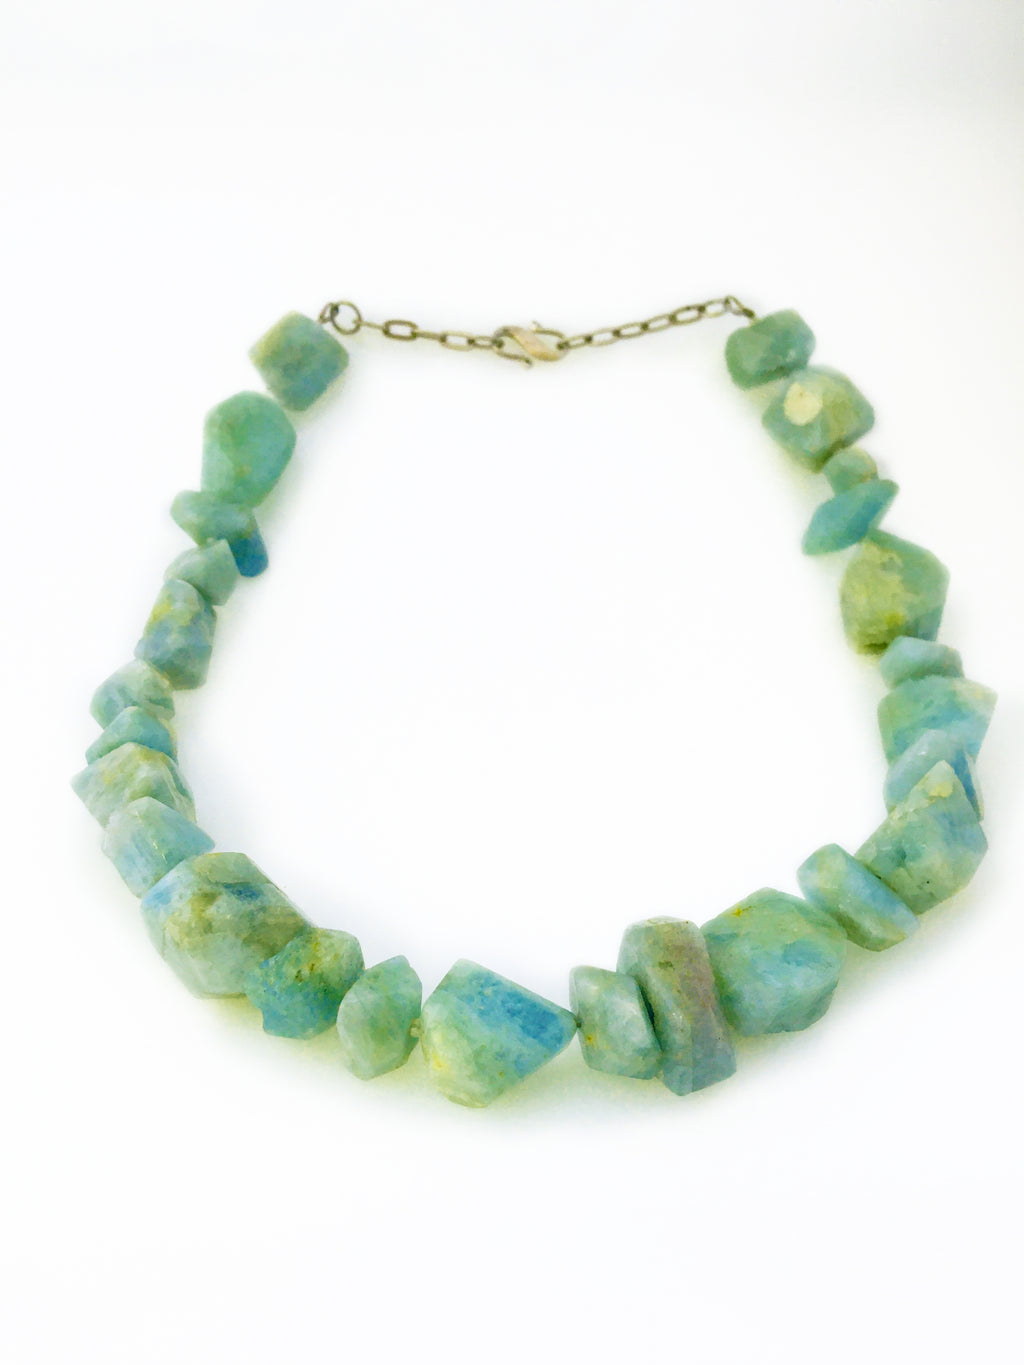 Raw Chunk Aquamarine & Sterling Silver Necklace